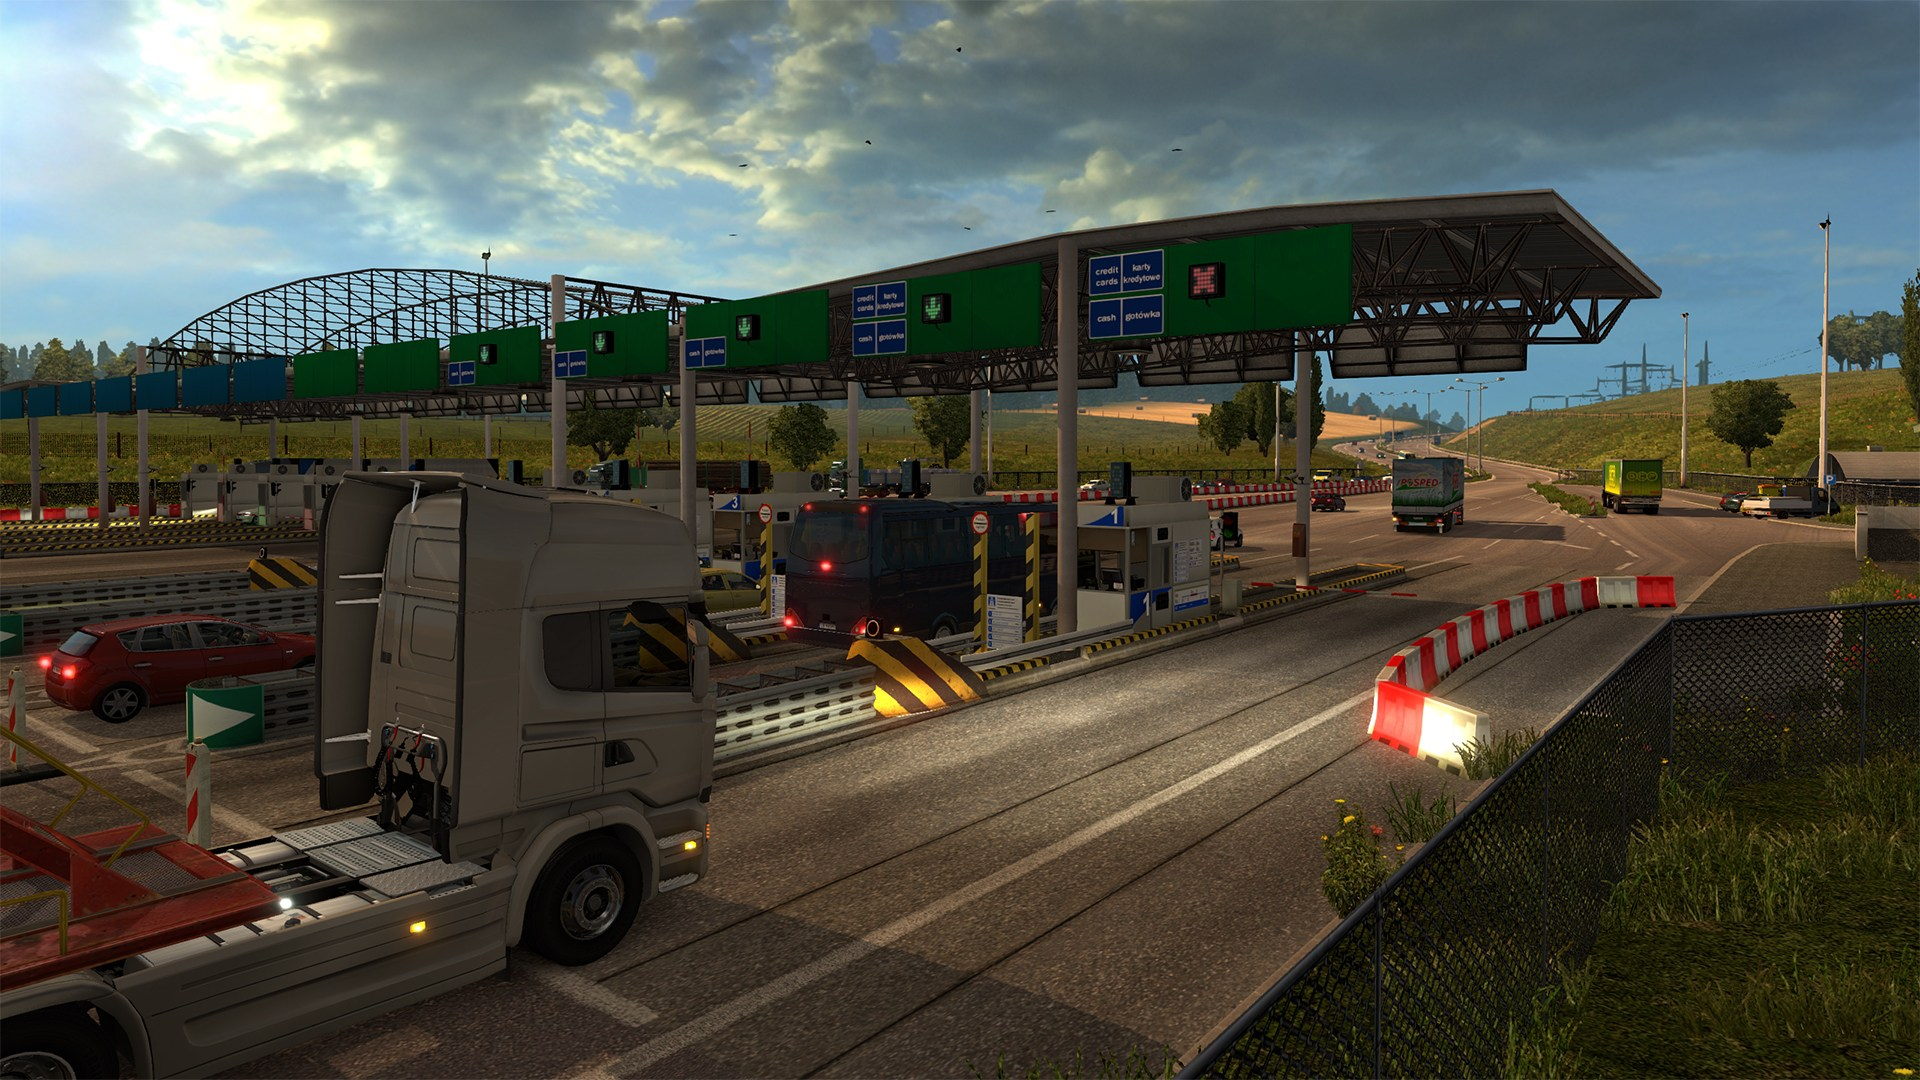 Free Download Euro Truck Simulator 2 V1 31 2 6s Ali213 Skidrow Cracked